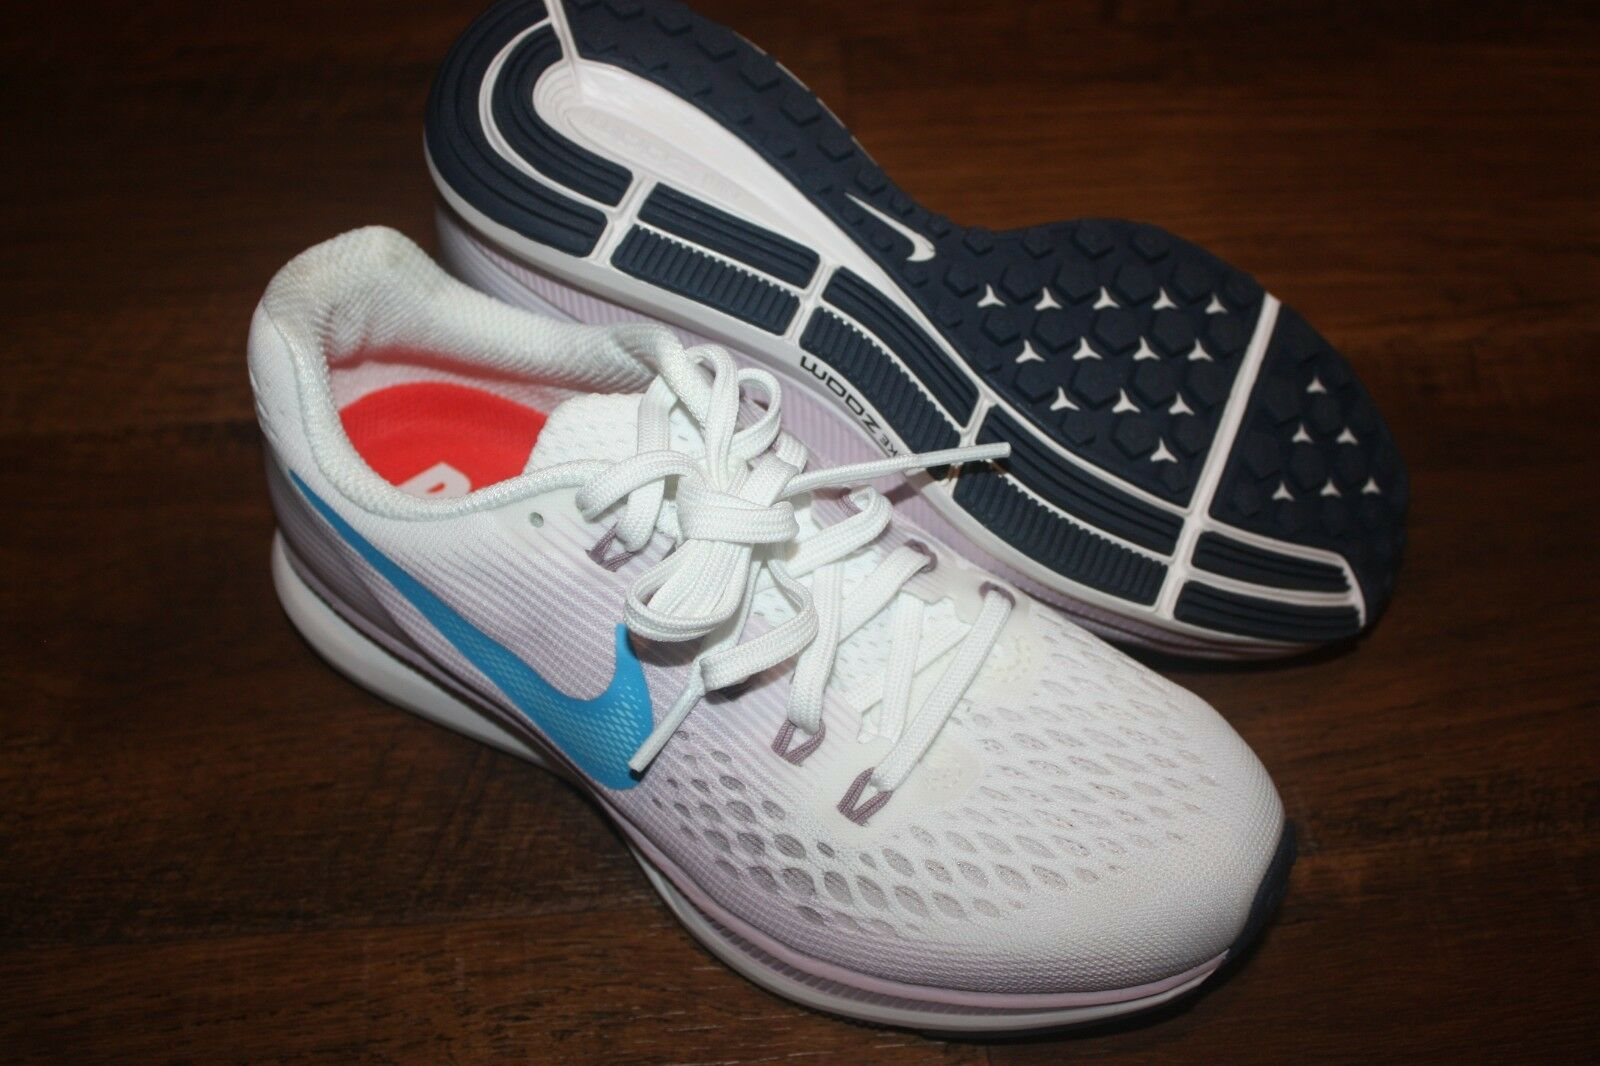 New In Box Women's Nike Air Zoom Pegasus 34 880560-105 Running shoes SHIP FREE